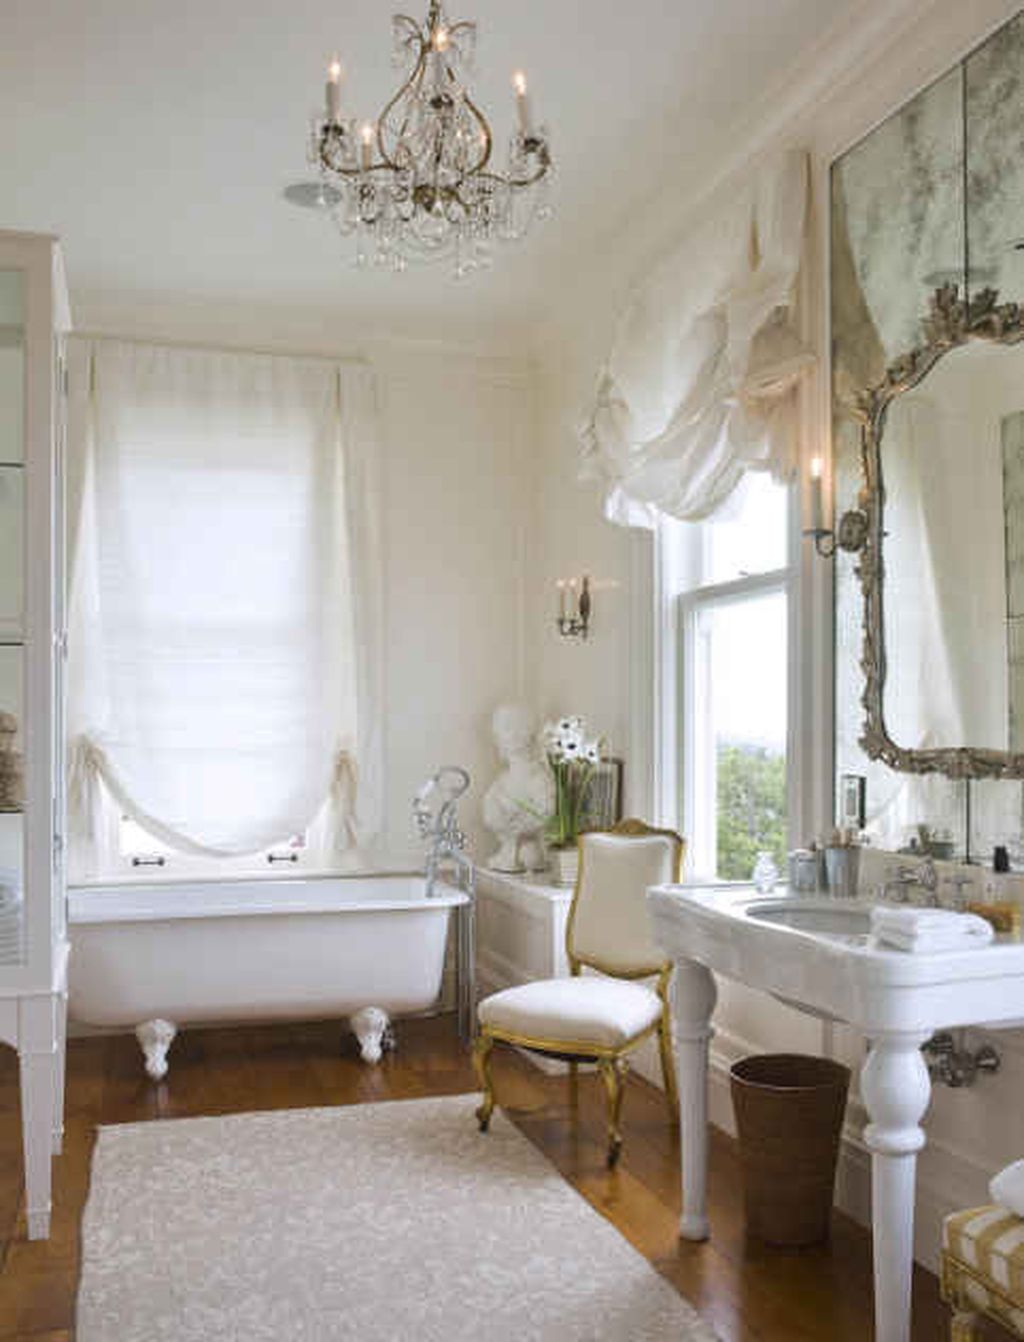 Romantic And Elegant Bathroom Design Ideas With Chandeliers 14 Homedecorish